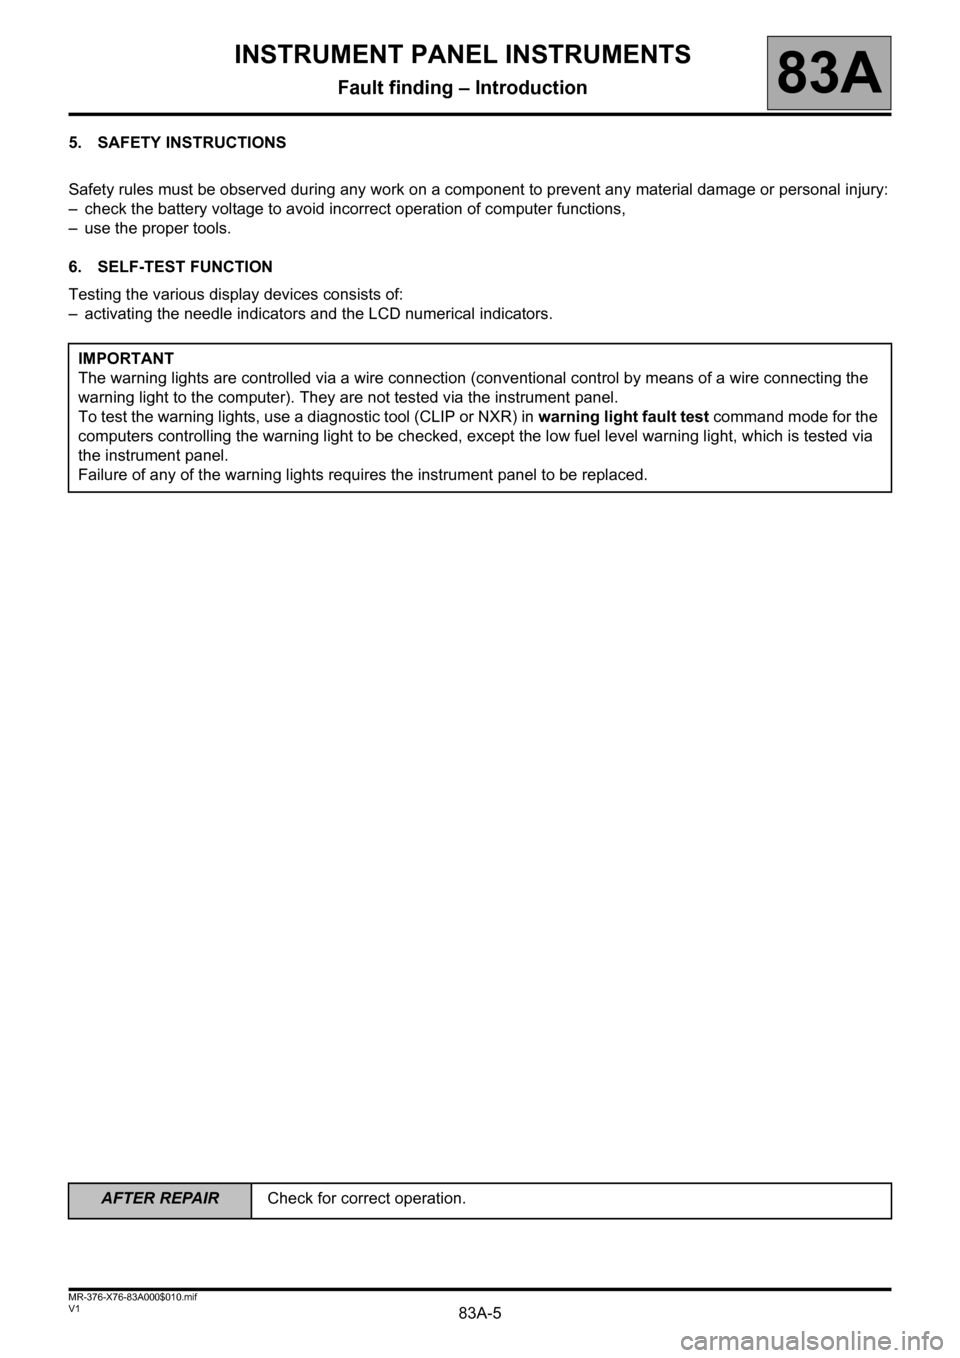 RENAULT KANGOO 2013 X61 / 2.G Instrument Panel Instruments Workshop Manual, Page 5